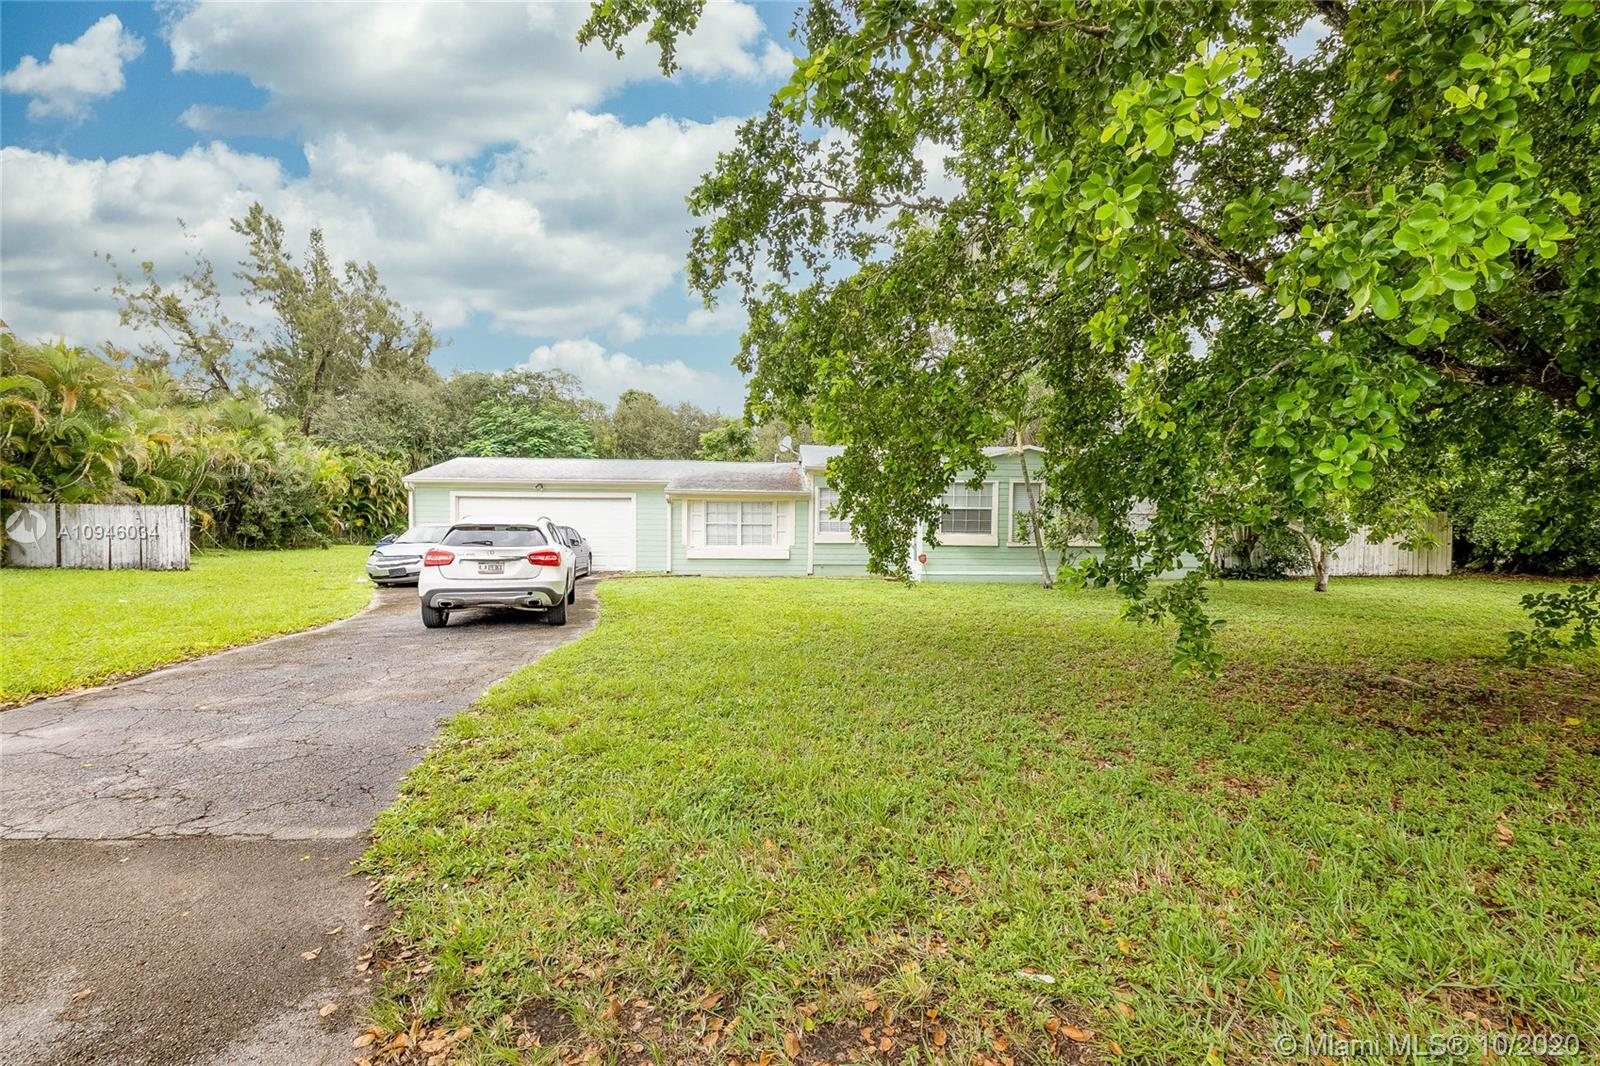 Details for 195 148th St, Miami, FL 33161